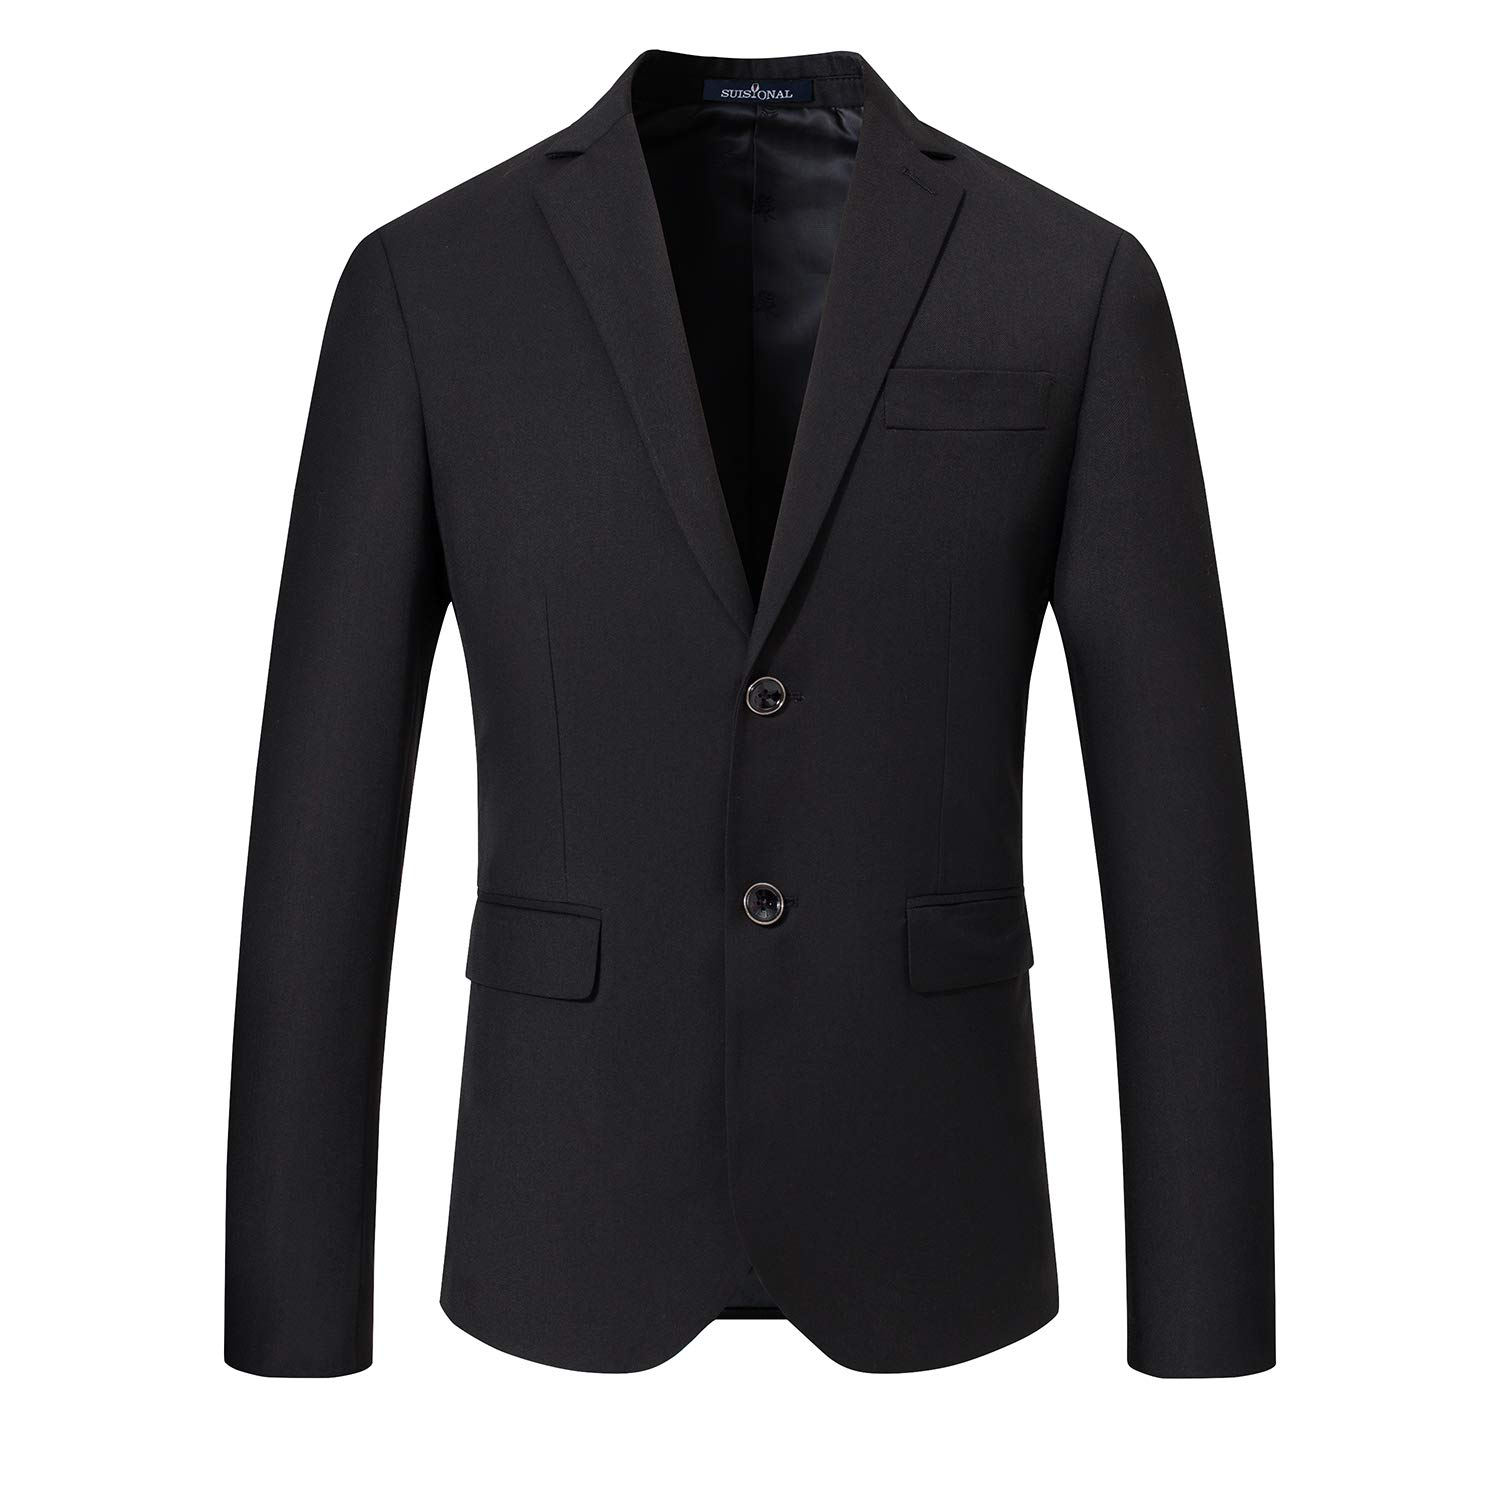 SuiSional Men's Classic Suit Jacket Casual Two Button Blazer Tuxedo,BlackXL by SuiSional